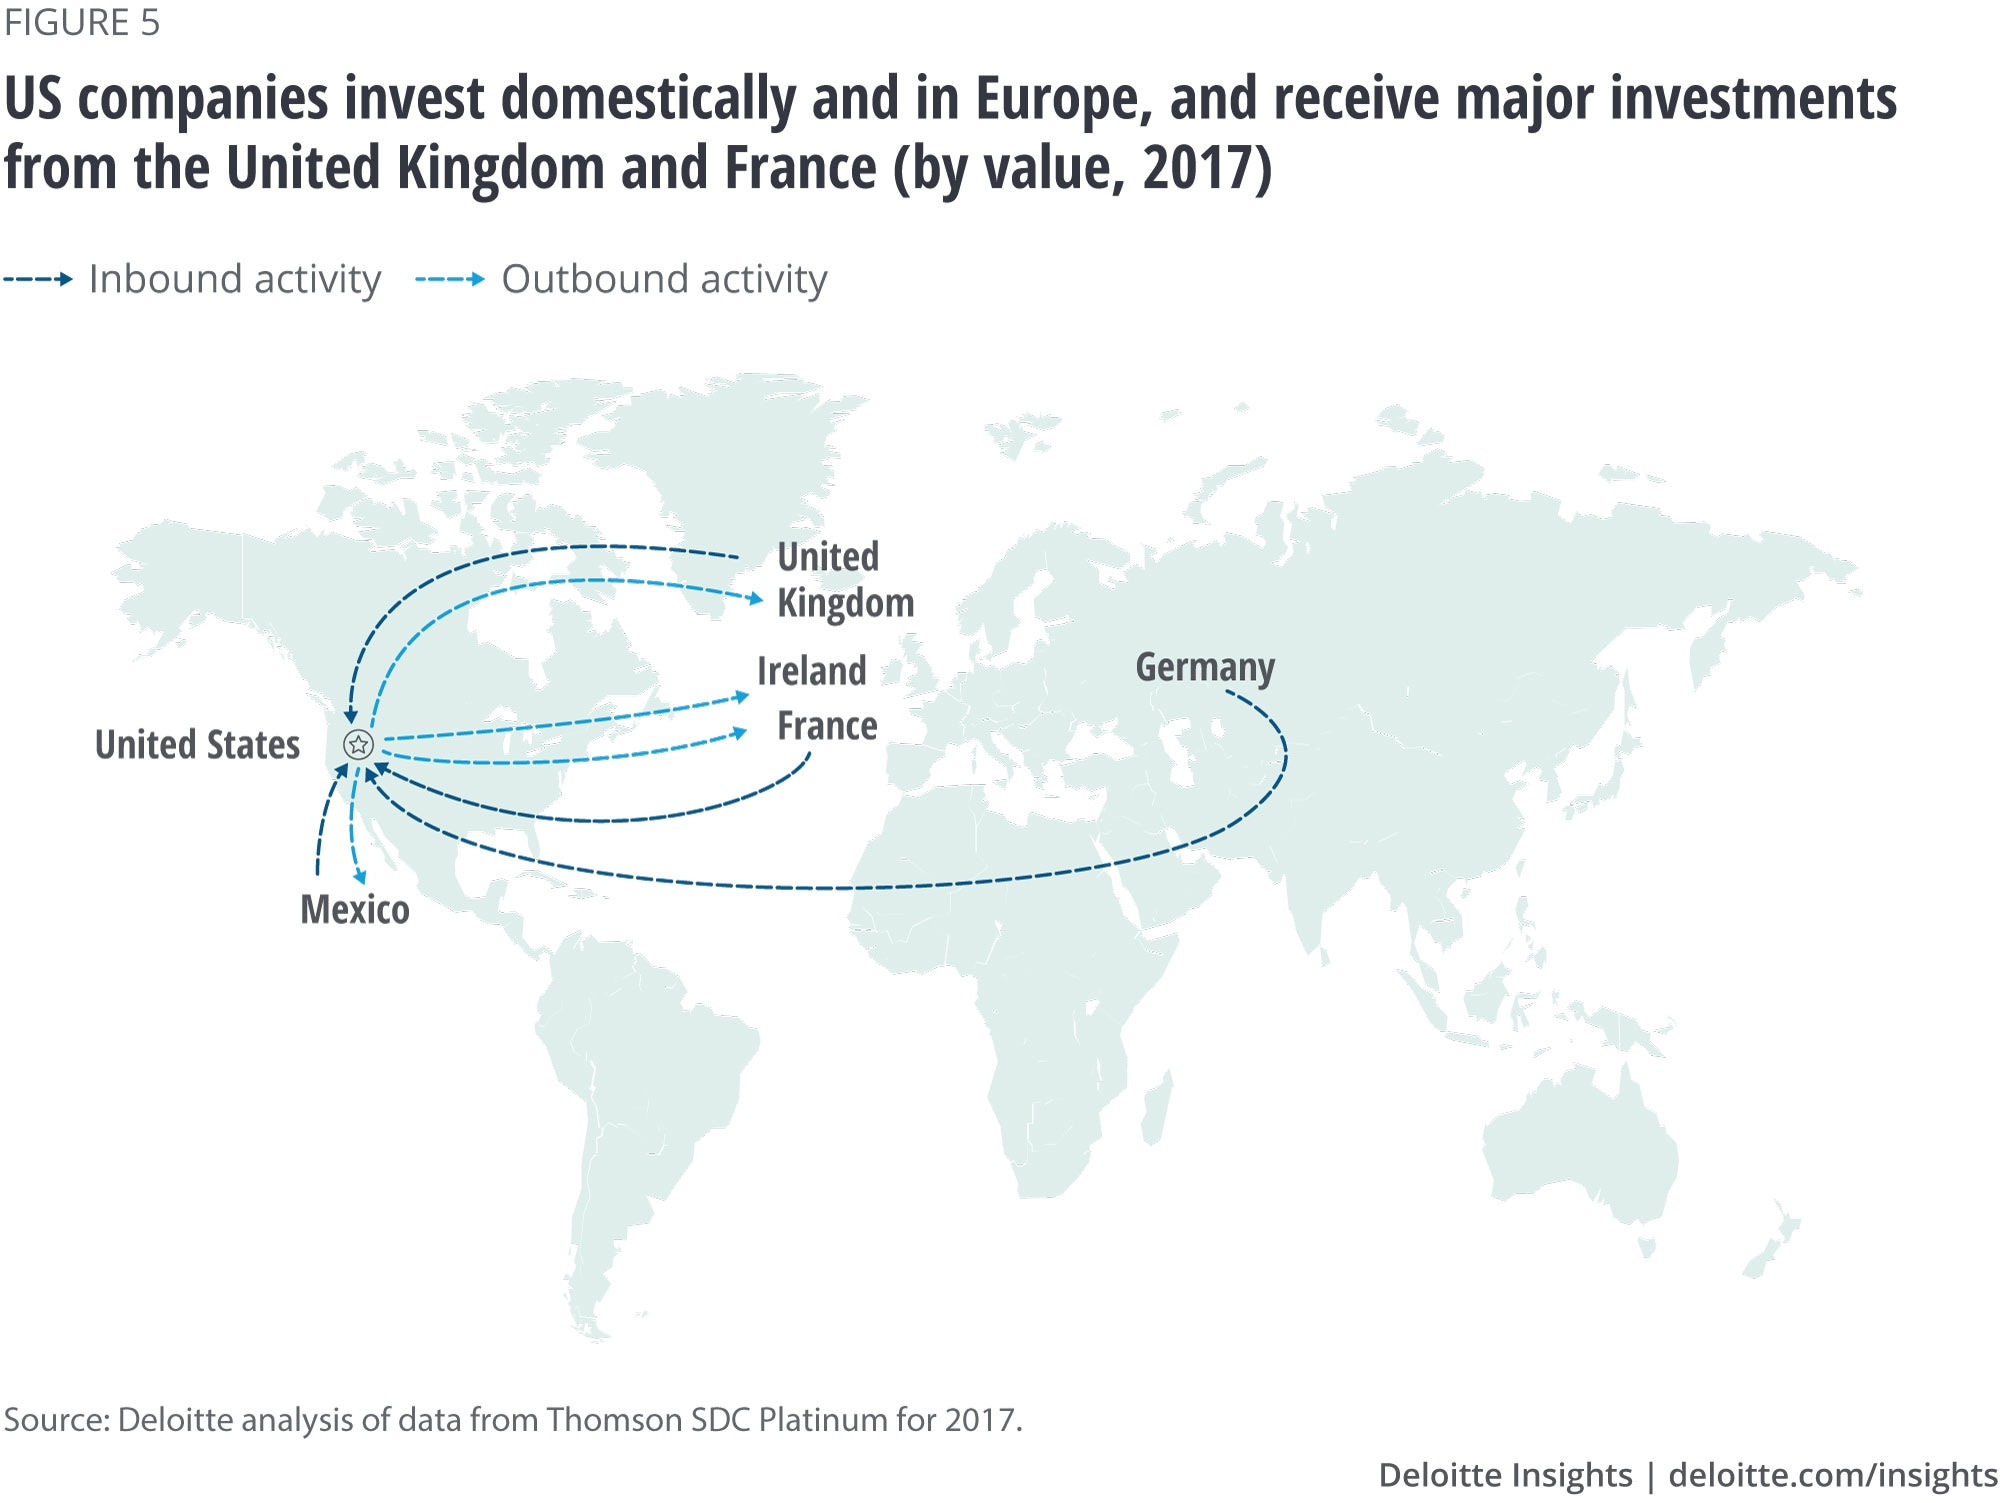 US companies invest domestically and in Europe, and receive major investments from the United Kingdom and France (by value, 2017)